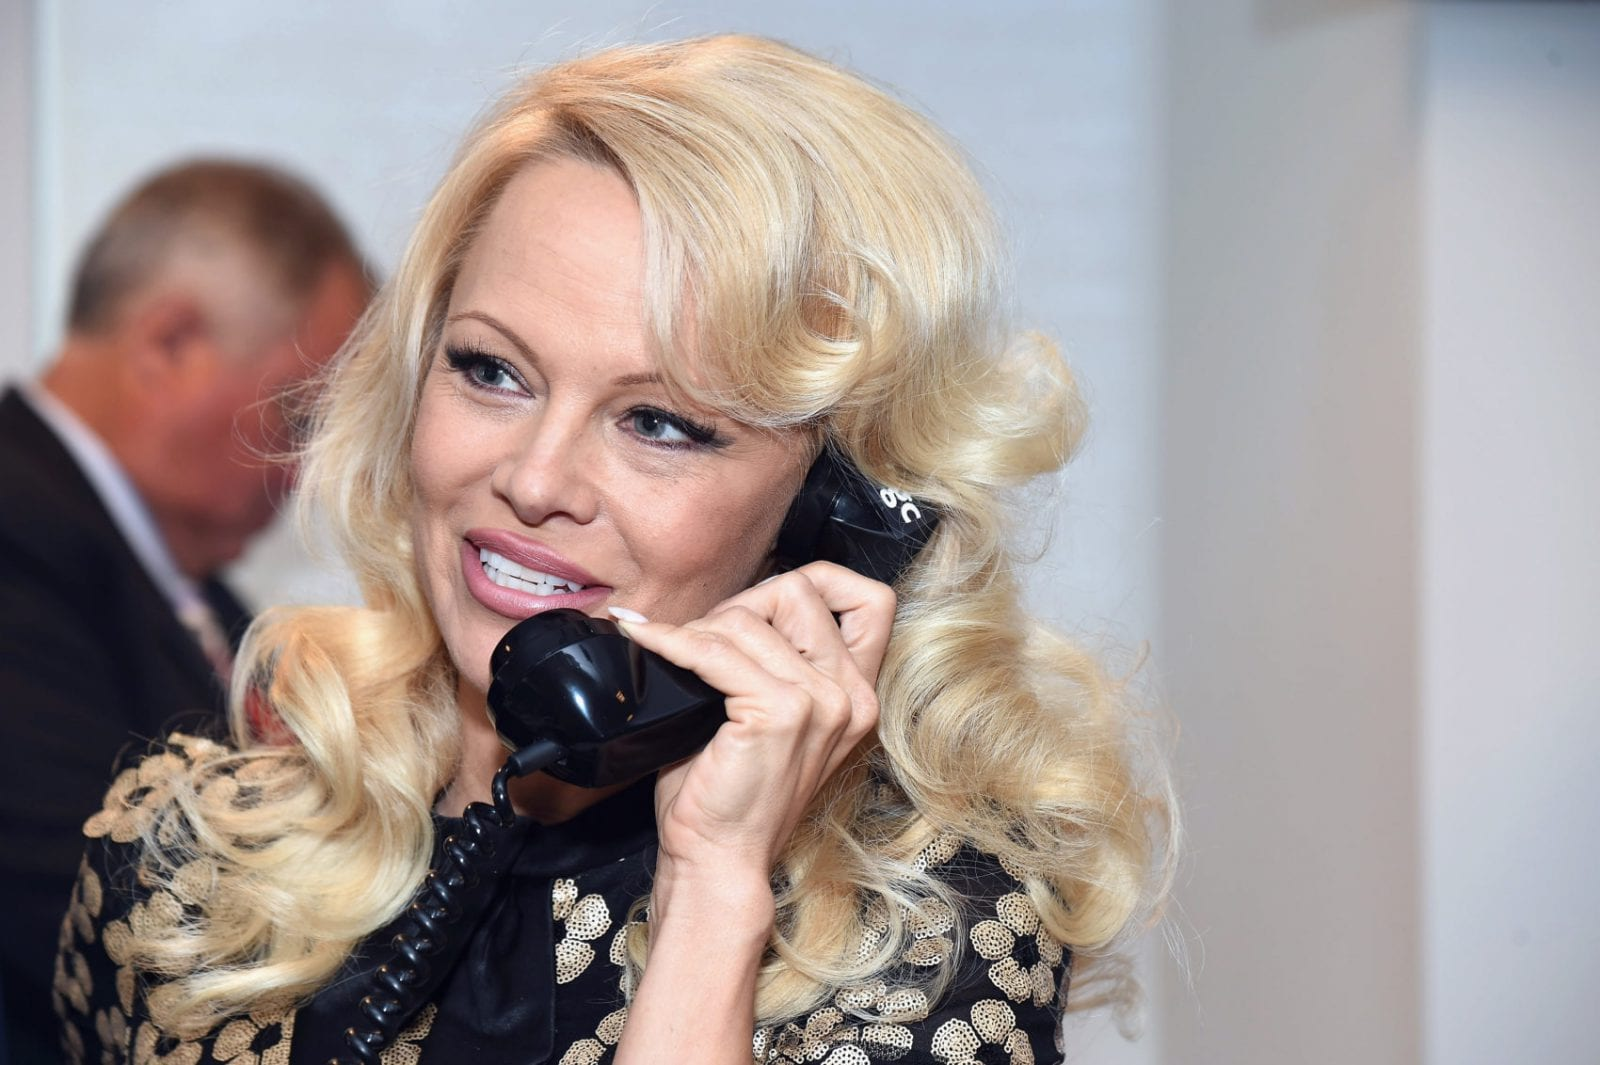 Pamela Anderson wants us to watch less porn and have more sex